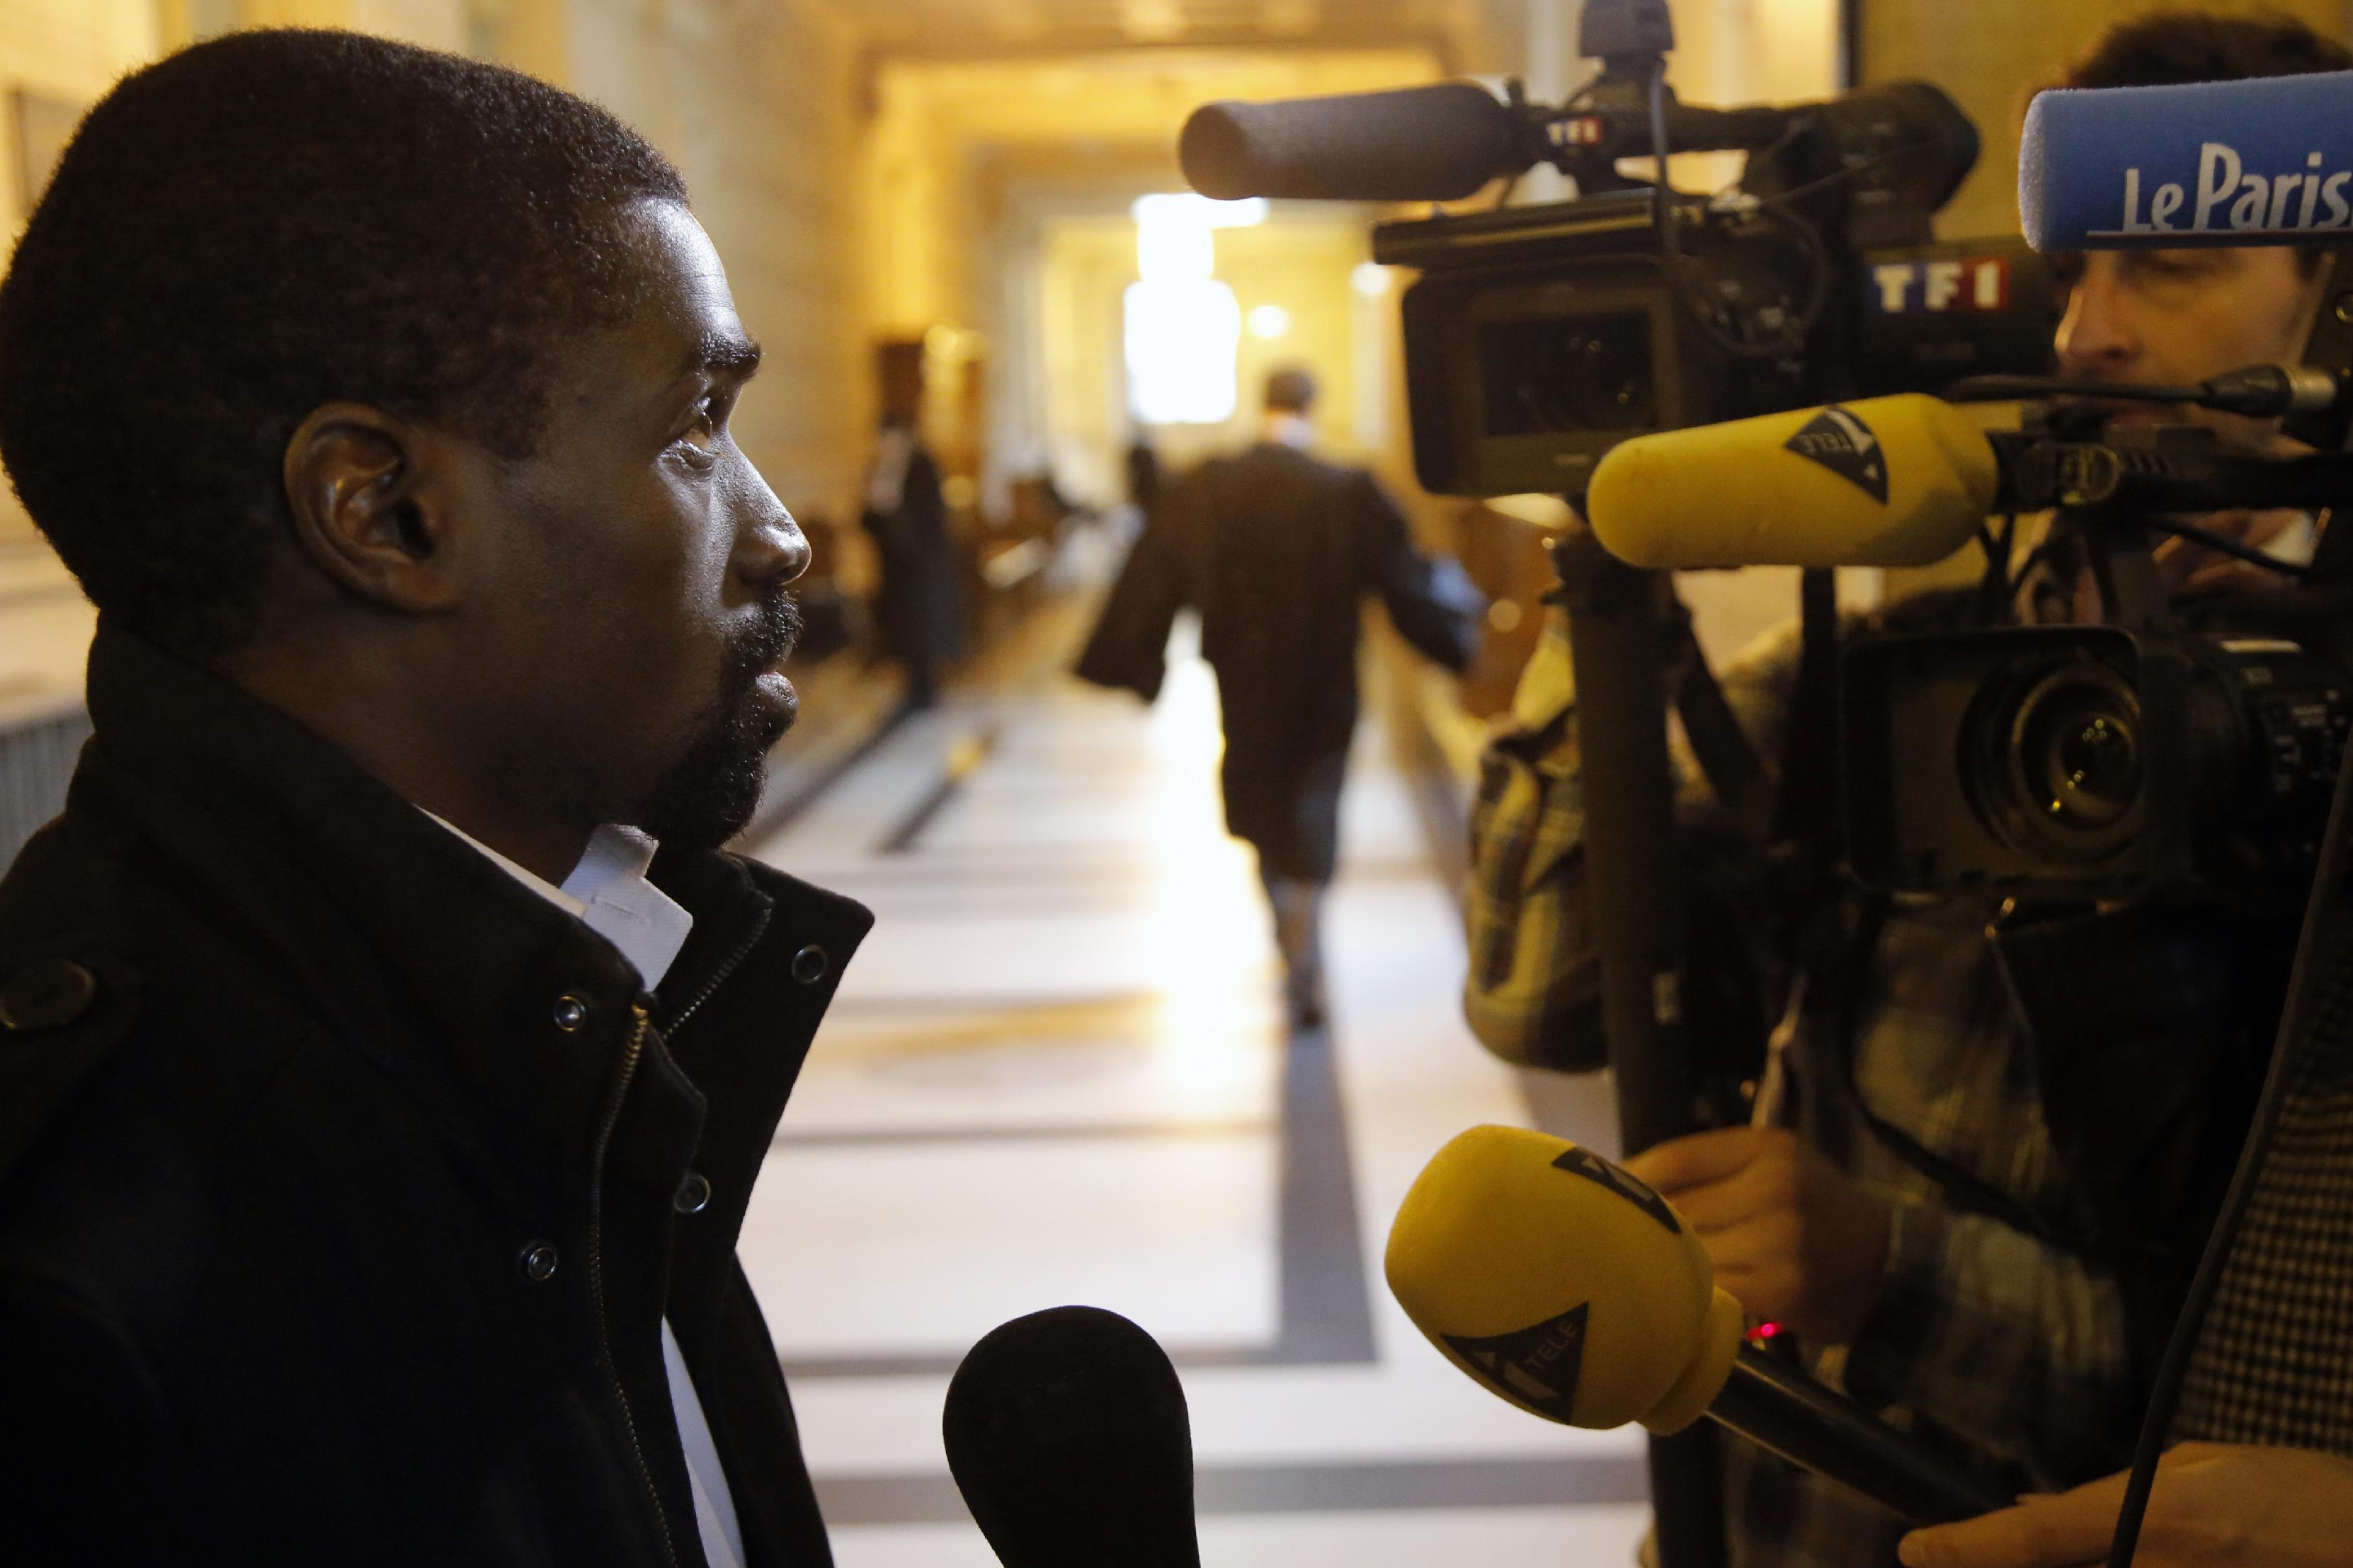 French court hears claims police frisk based on race